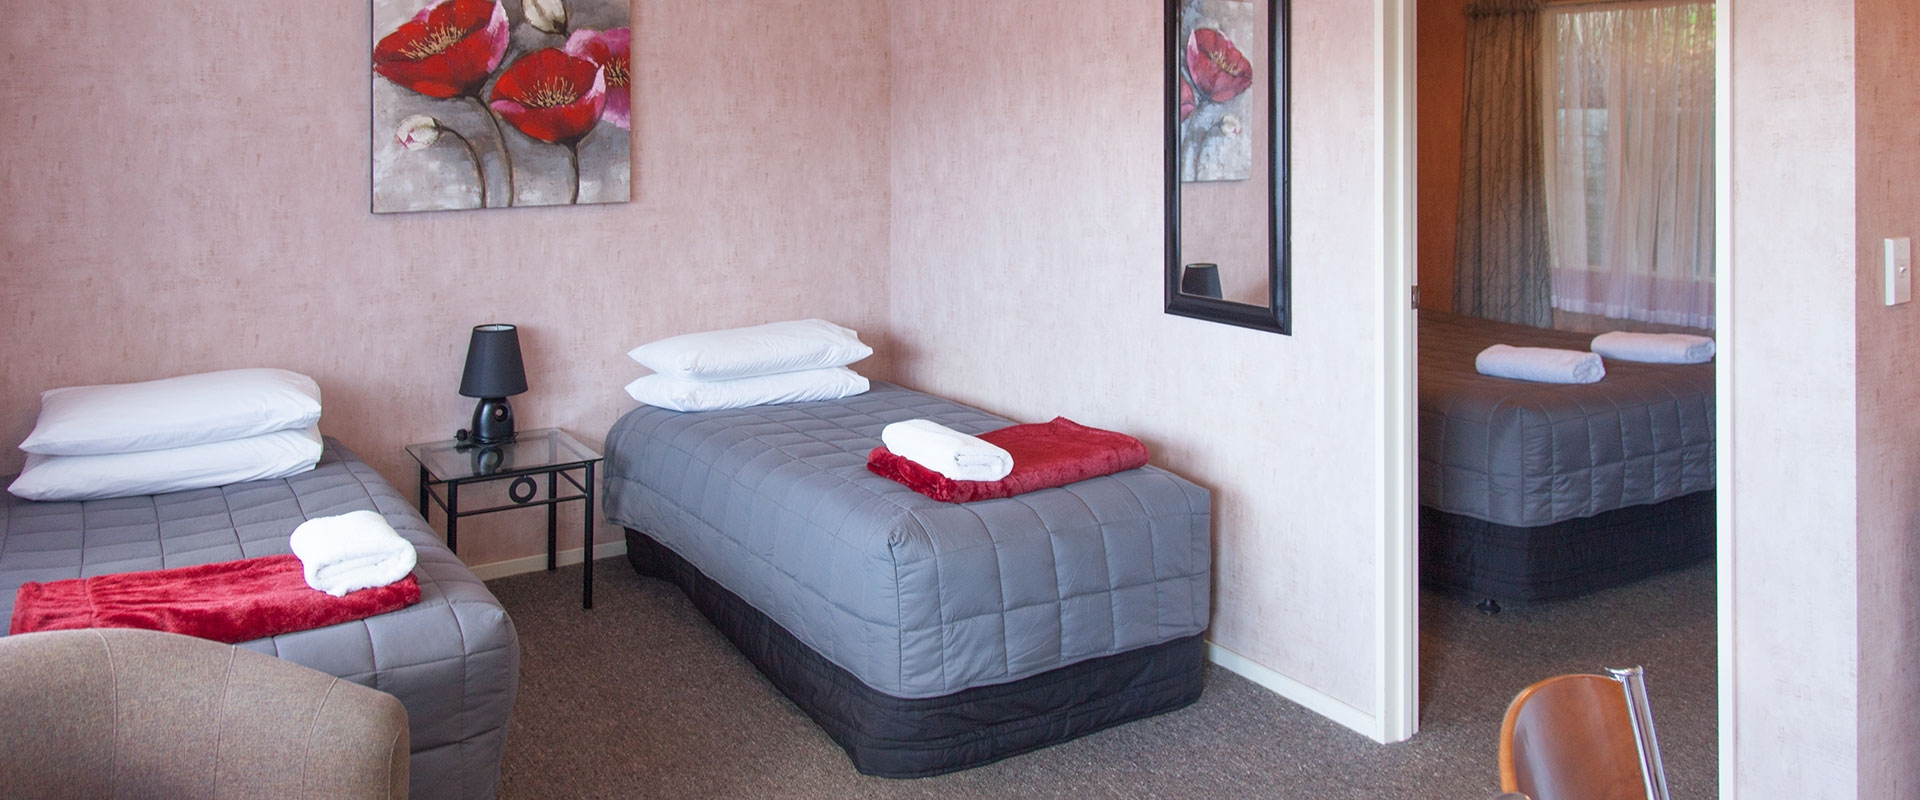 comfortable accommodation at affordable rates